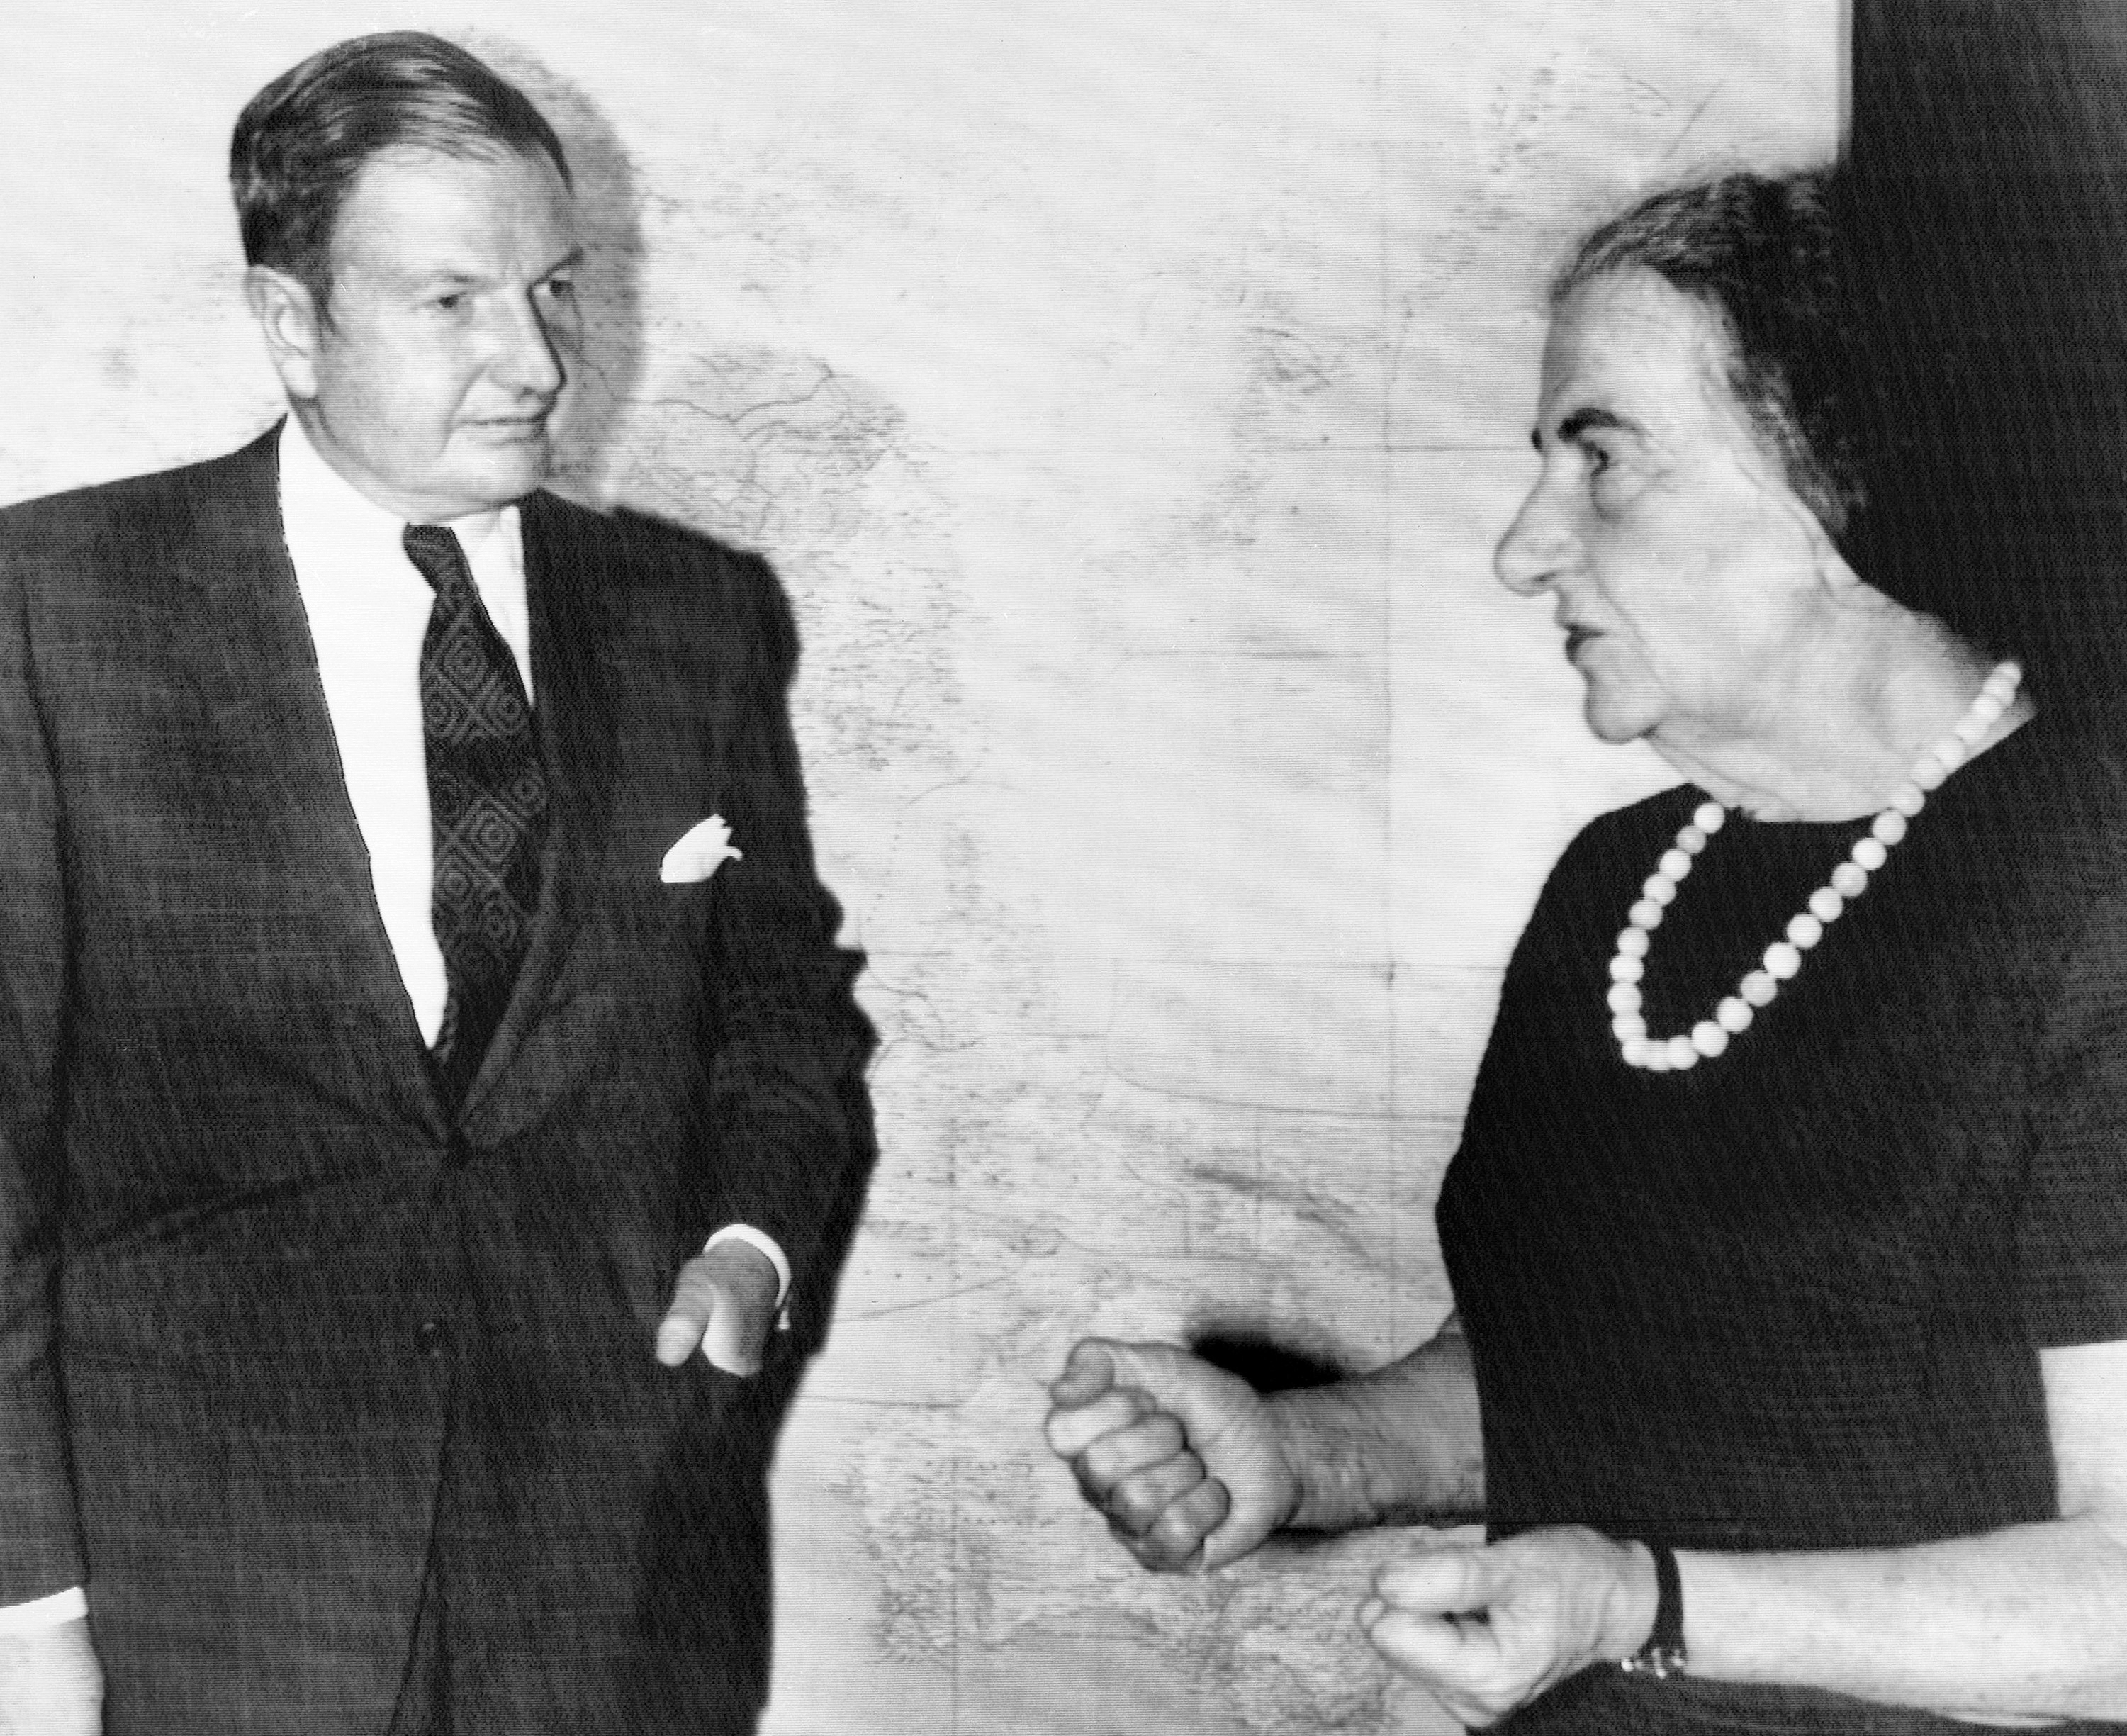 Obit David Rockefeller-4 FILE - In this March 10, 1971, file photo, David Rockefeller, left, chairman of the Chase Manhattan Bank, talks with Israeli Prime Minister Golda Meir after his arrival in Israel. The billionaire philanthropist who was the last of his generation in the famously philanthropic Rockefeller family died, Monday, March 20, 2017, according to a family spokesman. (AP Photo/File)